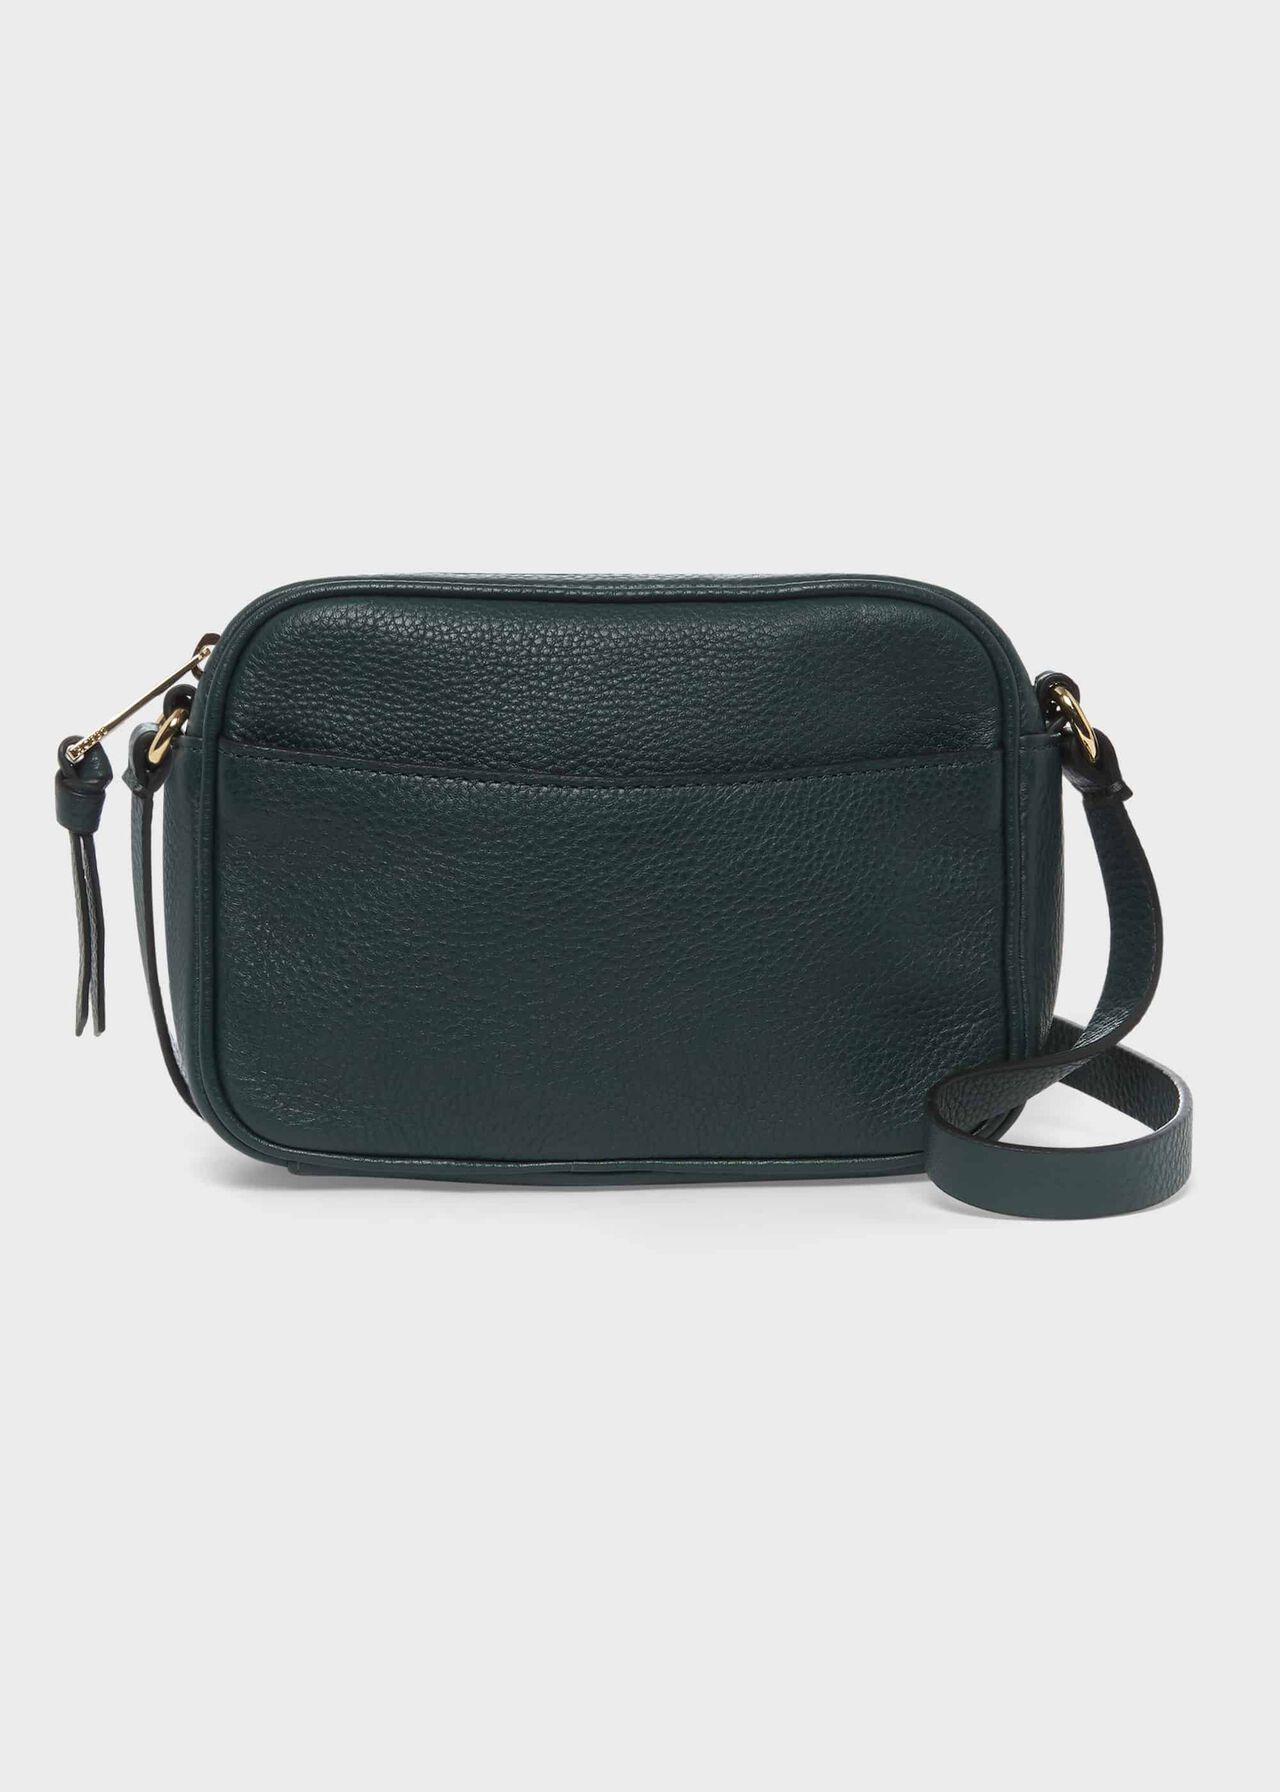 Pelham Leather Cross Body Bag, Bottle Green, hi-res